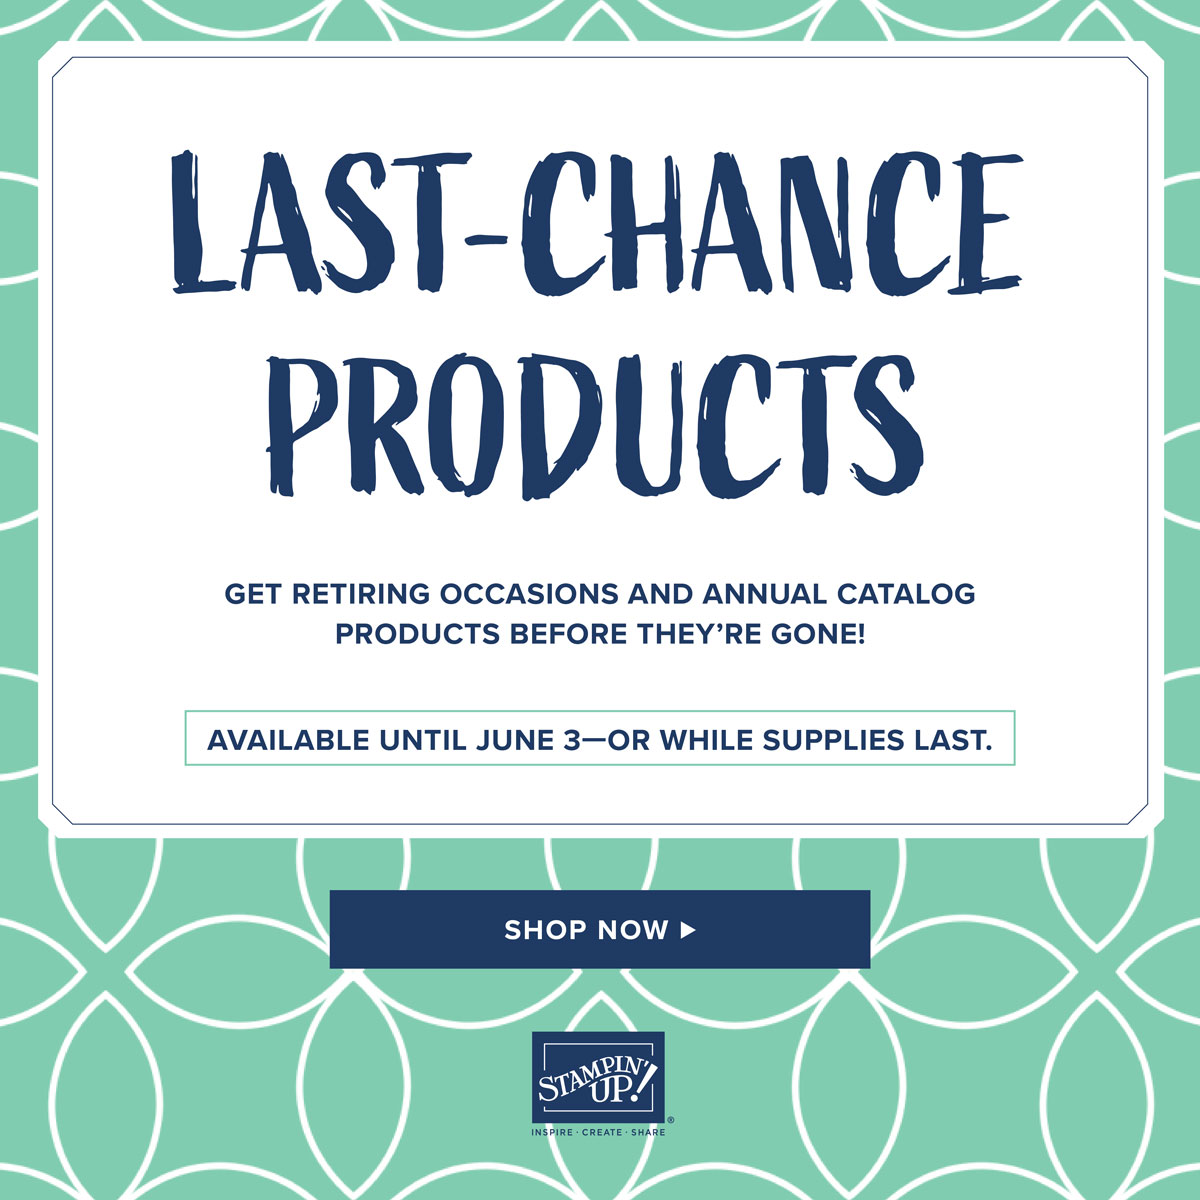 STAMPIN UP RETIREMENT LIST – While Supplies Last | Stampin Up